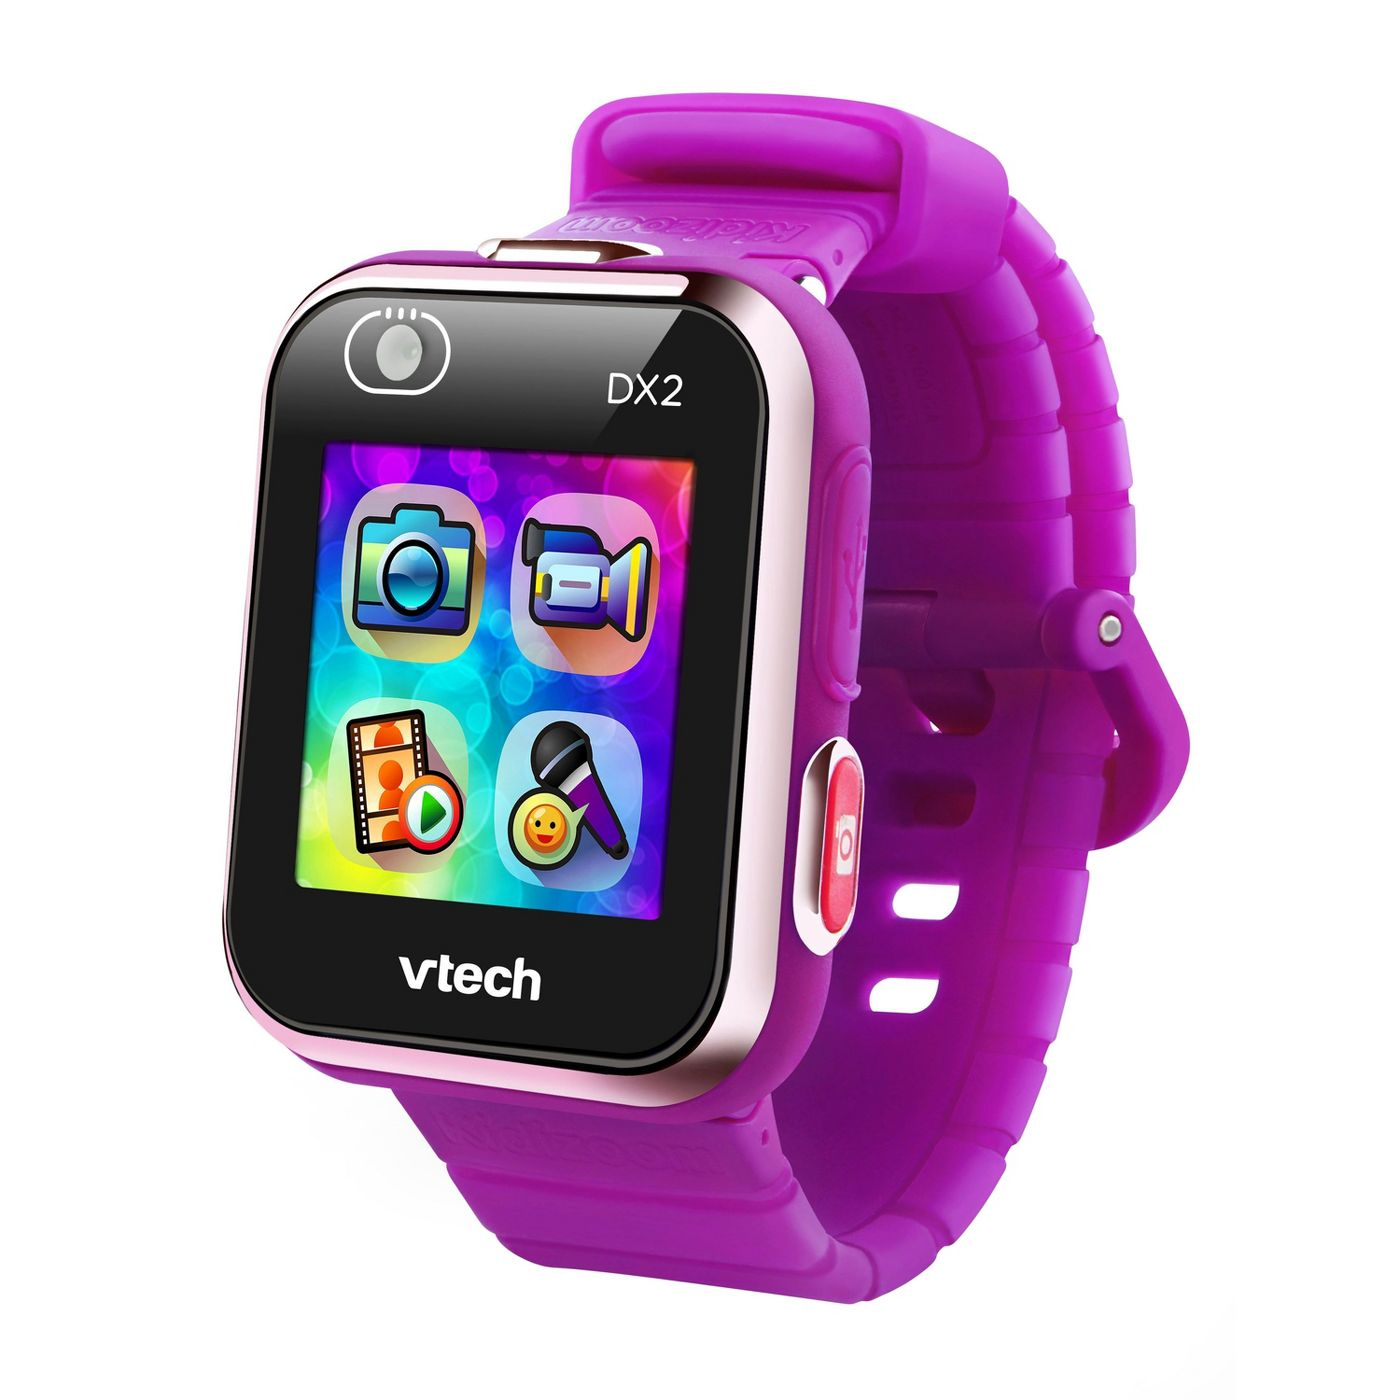 KidiZoom Smartwatch DX2 - image 1 of 7